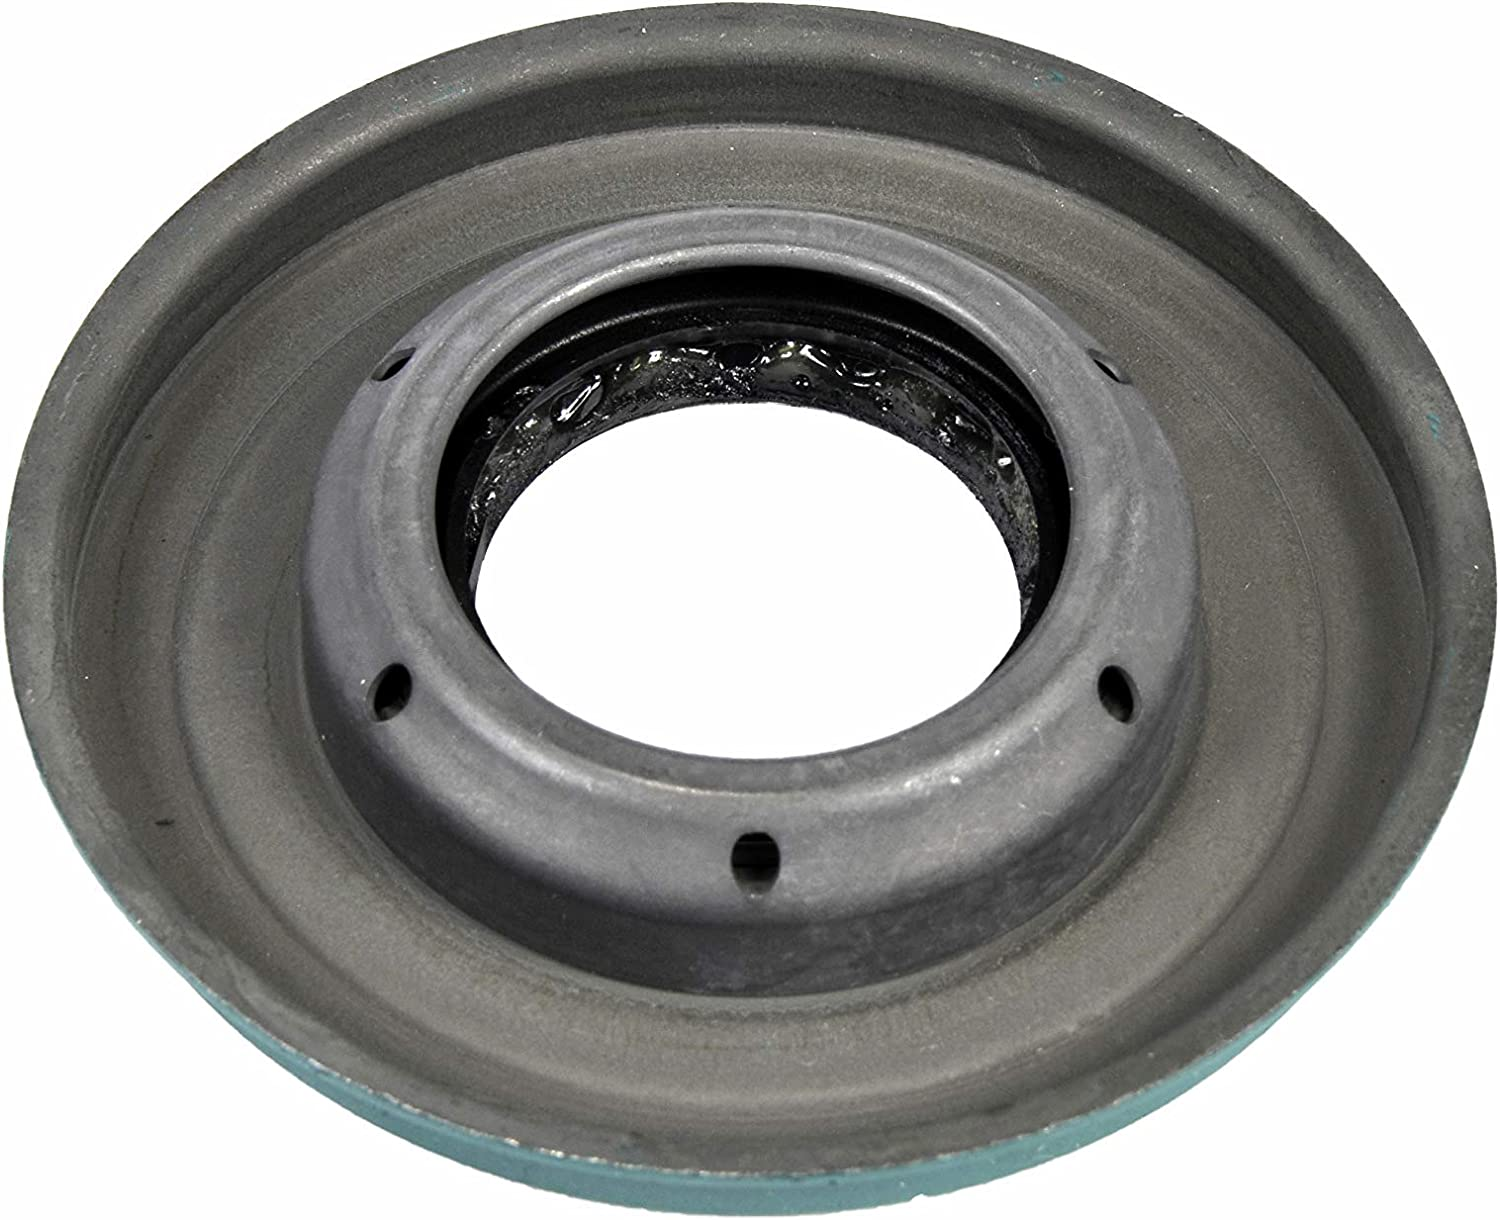 ACDelco 12479302 GM Original Equipment Front Passenger Side CV Axle Half Shaft Seal